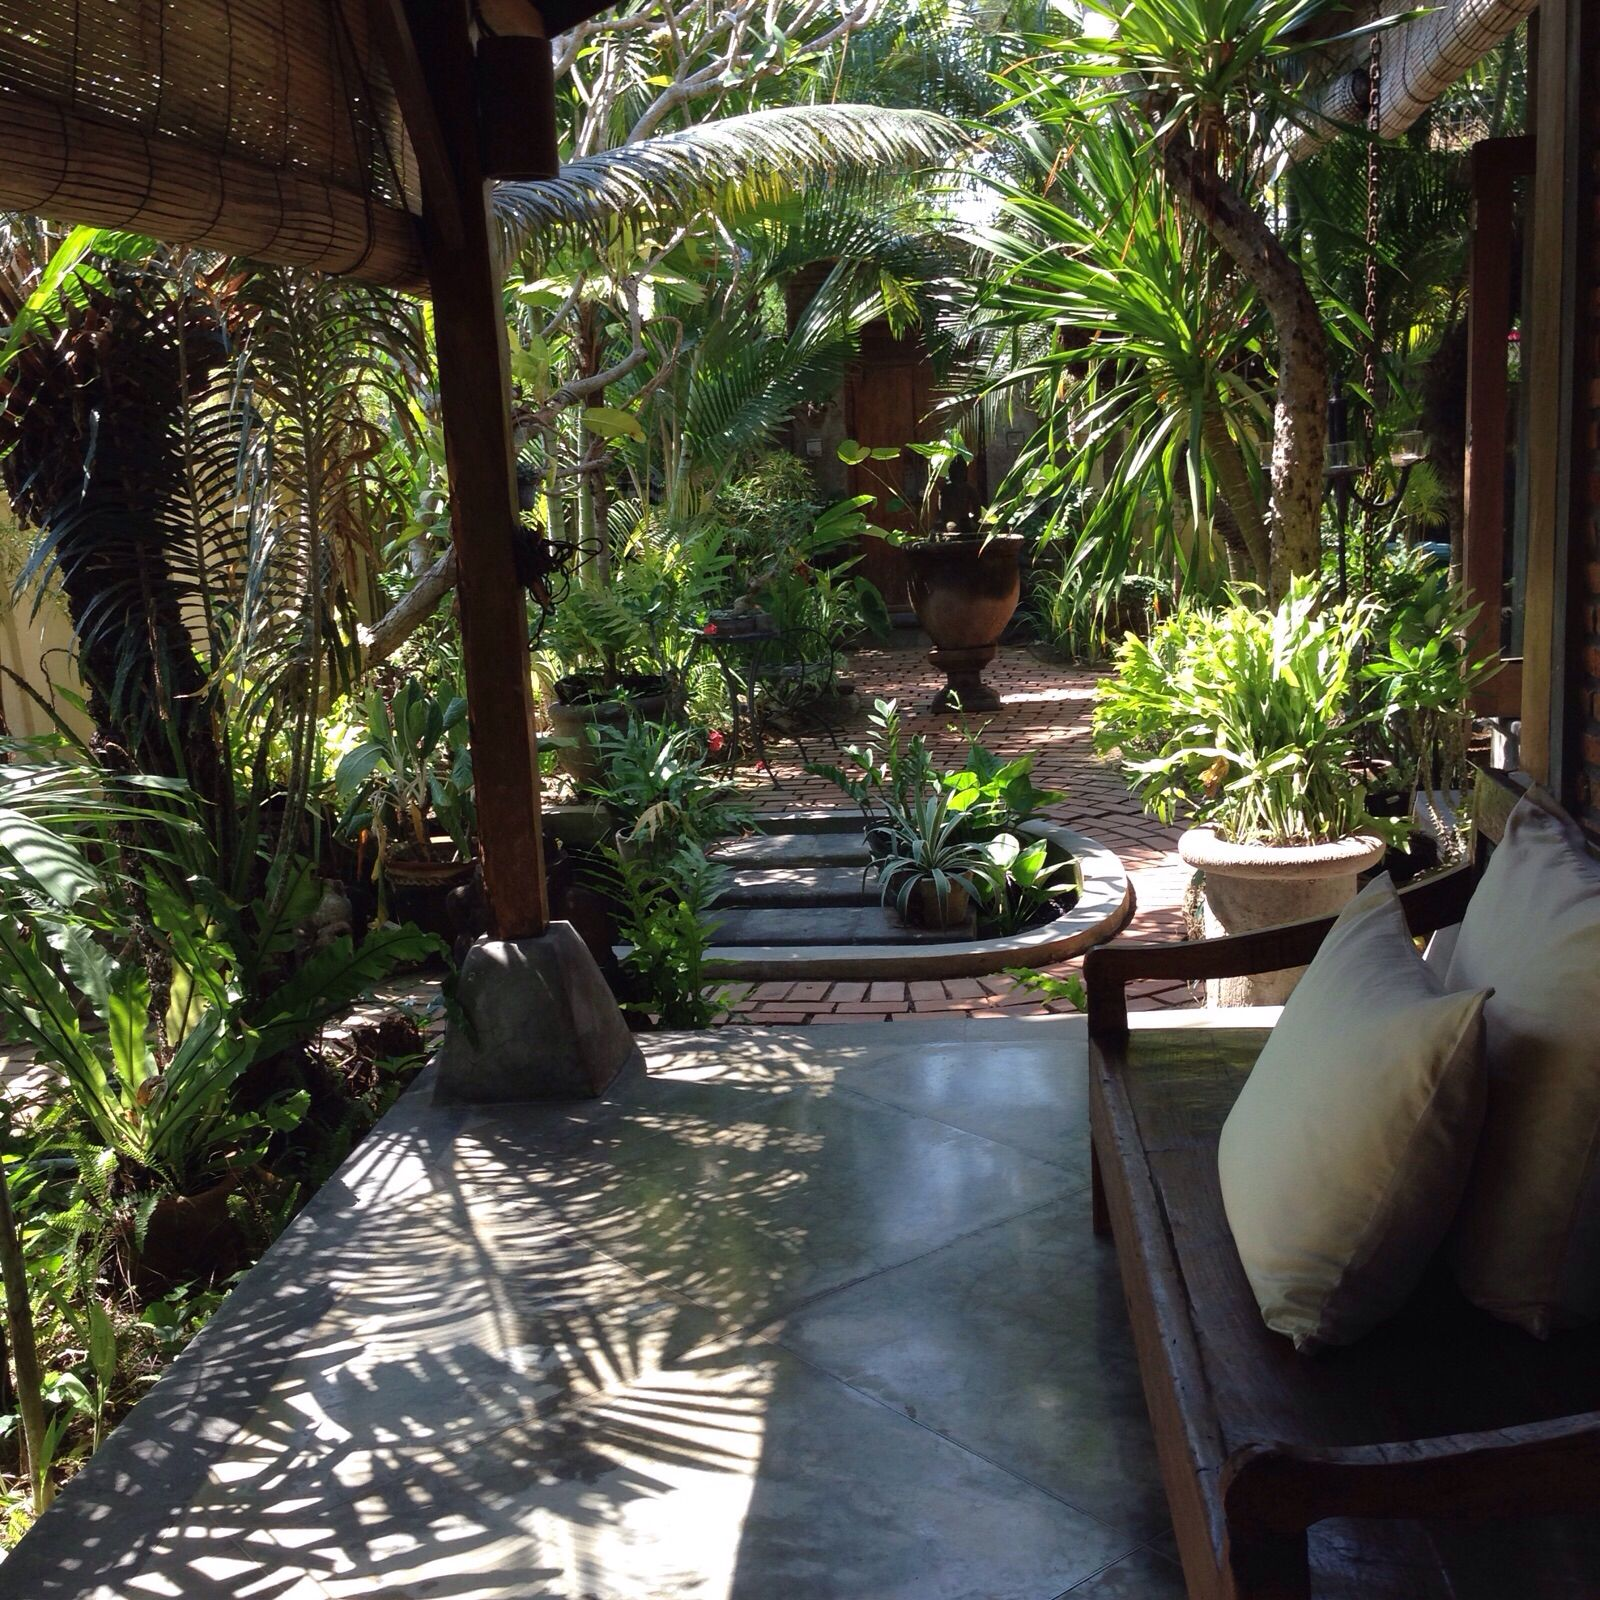 Ubud Property - Bali Property, Bali Real Estate, Land for ...